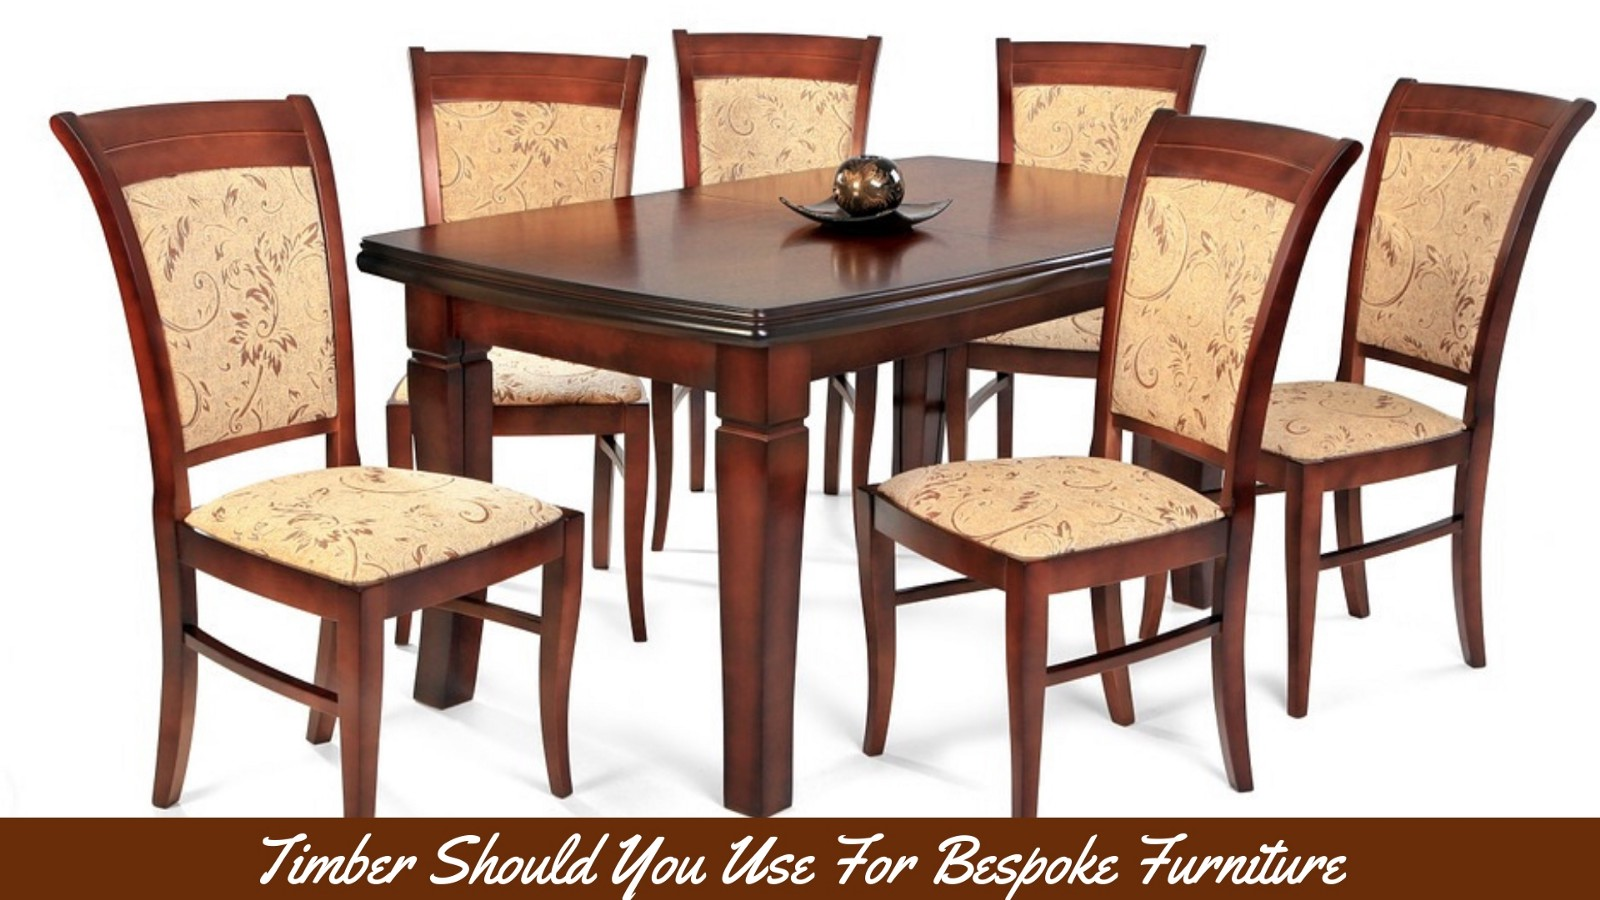 The Best Pieces Of Furniture That You Come Across Are Made Up Of Either  Aged Pine Or Red Oak. Let Us See What Else Could Be Found!